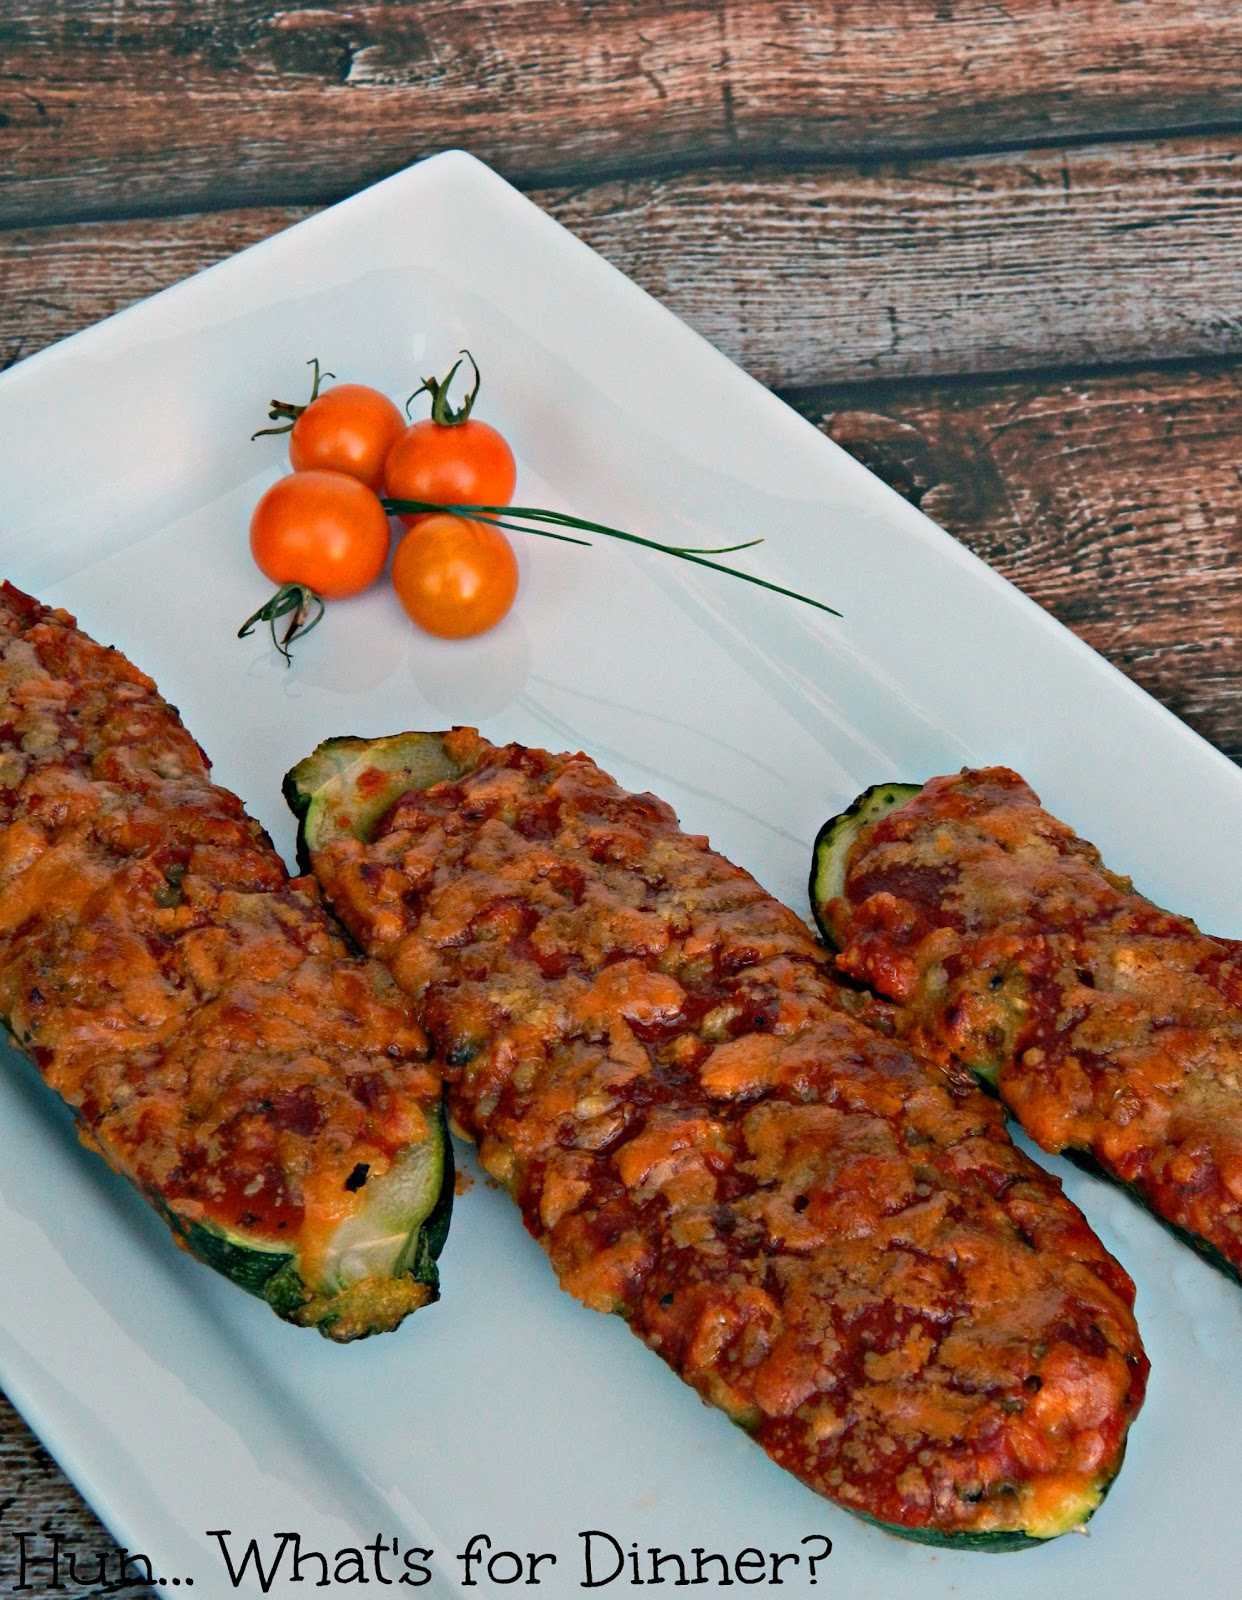 Hun... What's for Dinner?- Ooey Gooey Cheesy Stuffed Zucchini